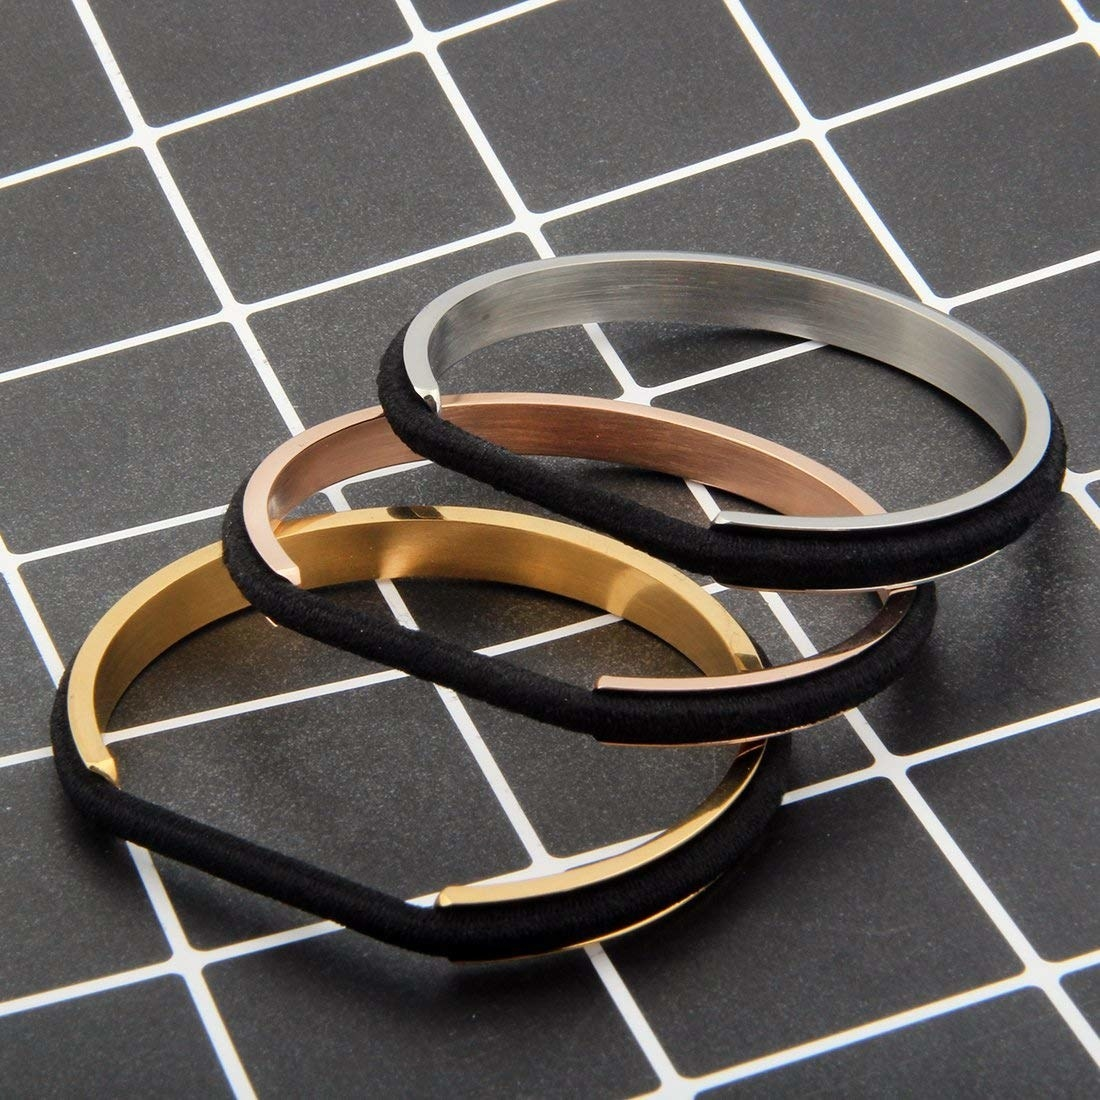 The silver rose gold and yellow gold bracelets with black hair ties around them